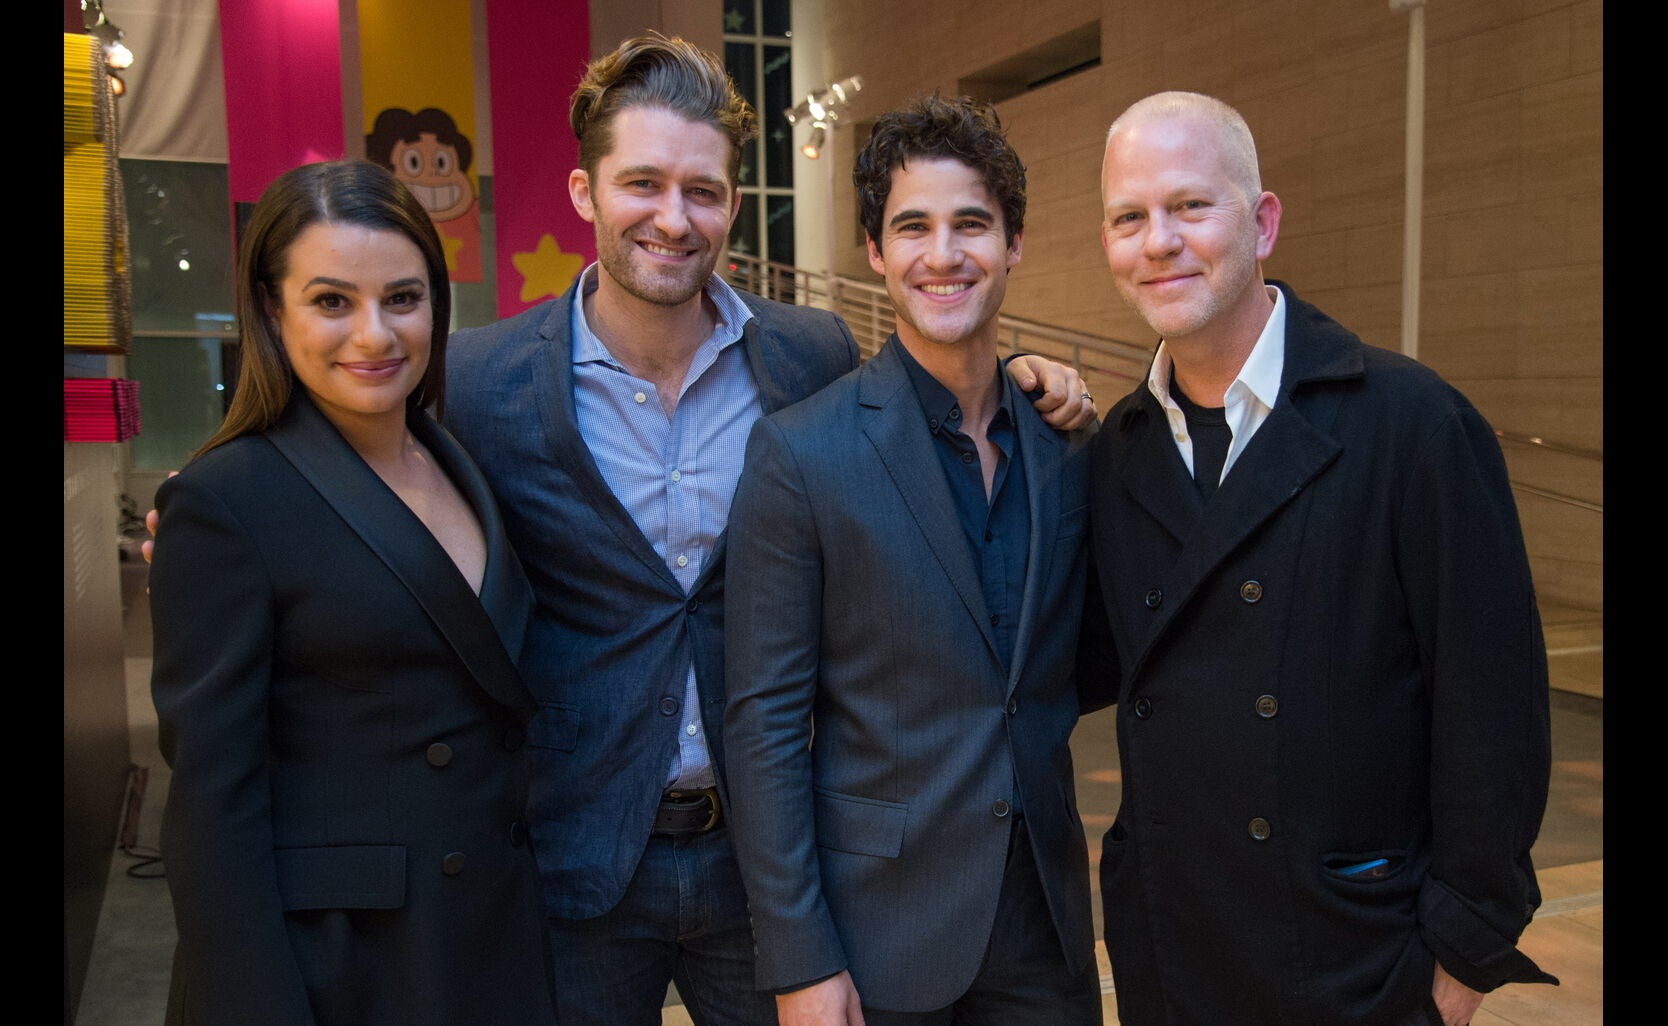 Cast of Glee and Ryan Murphy  at the Game Changers Panel, Paley Center, October 2017